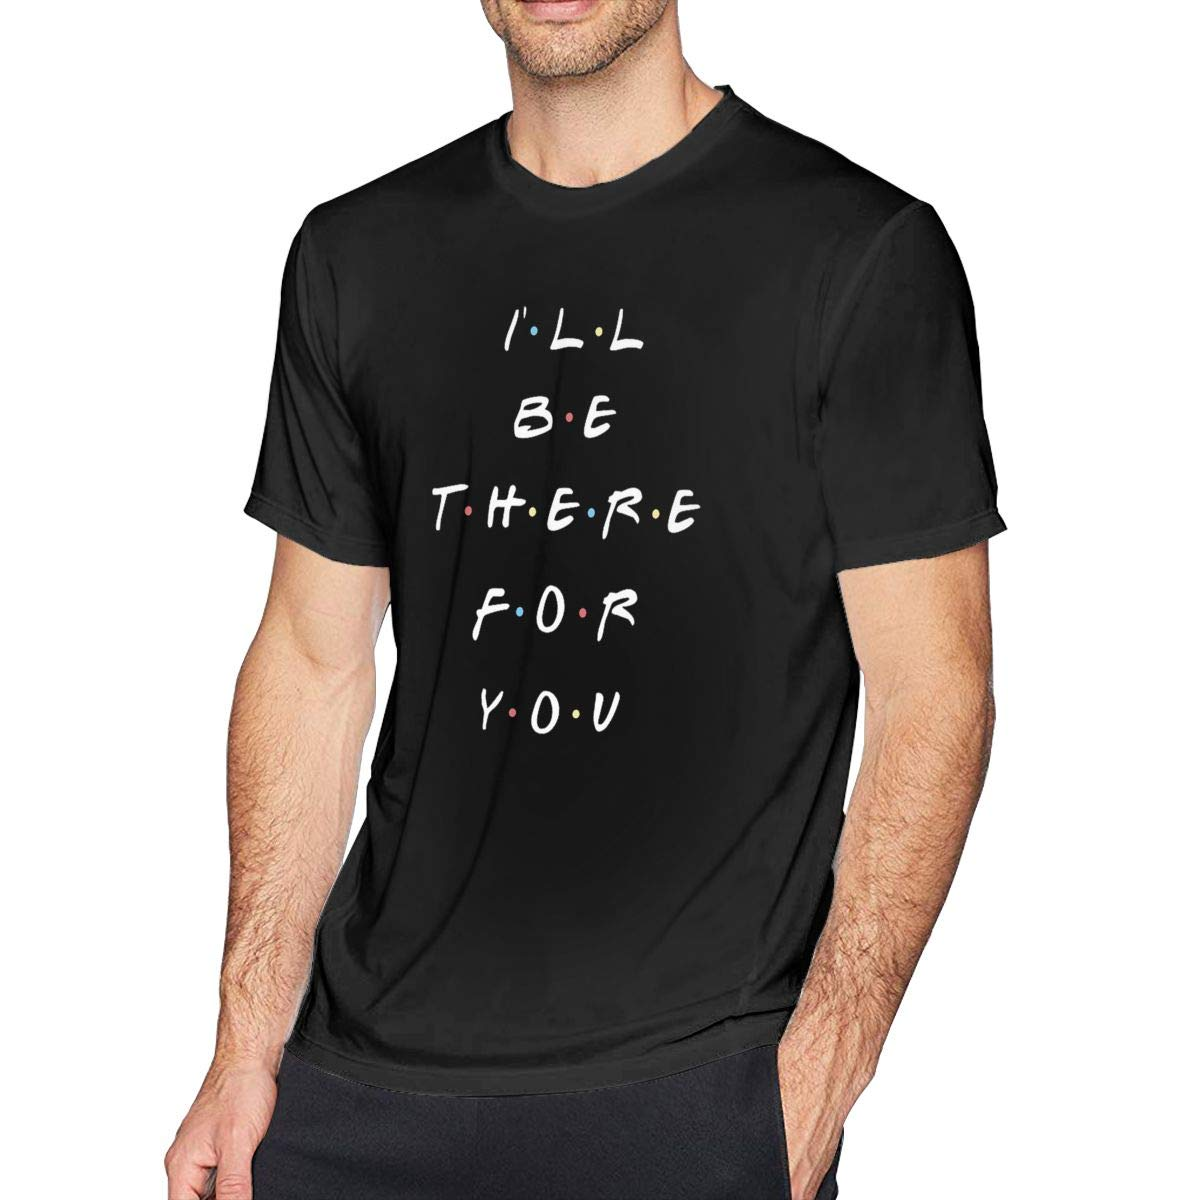 Ill BE There for You Mens Casual Slim Fit Short Sleeve T-Shirt 100/% Cotton Tee Tops